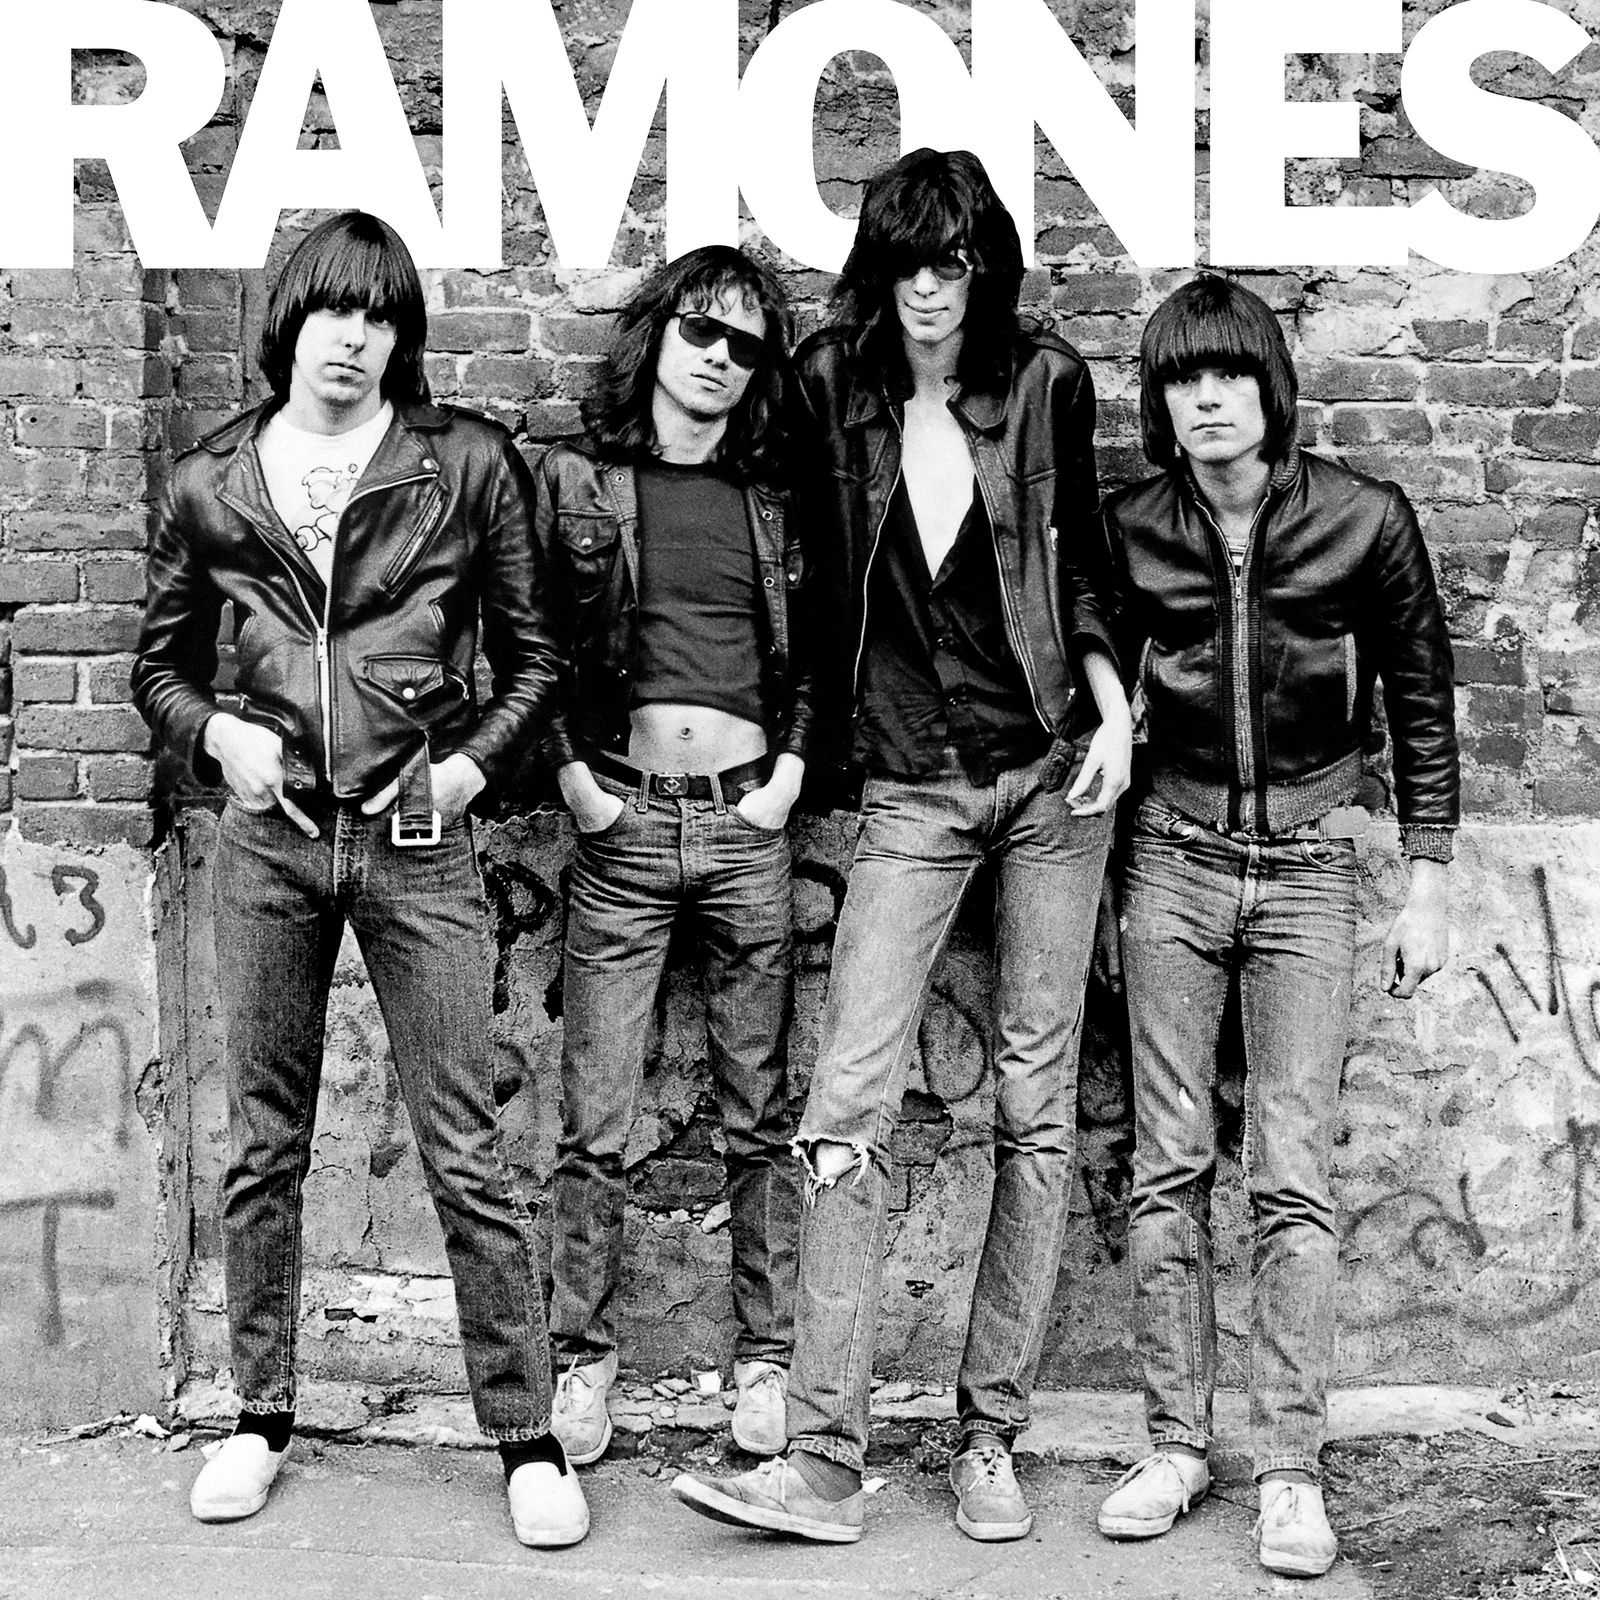 RAMONES release the 40th anniversary deluxe edition of their debut